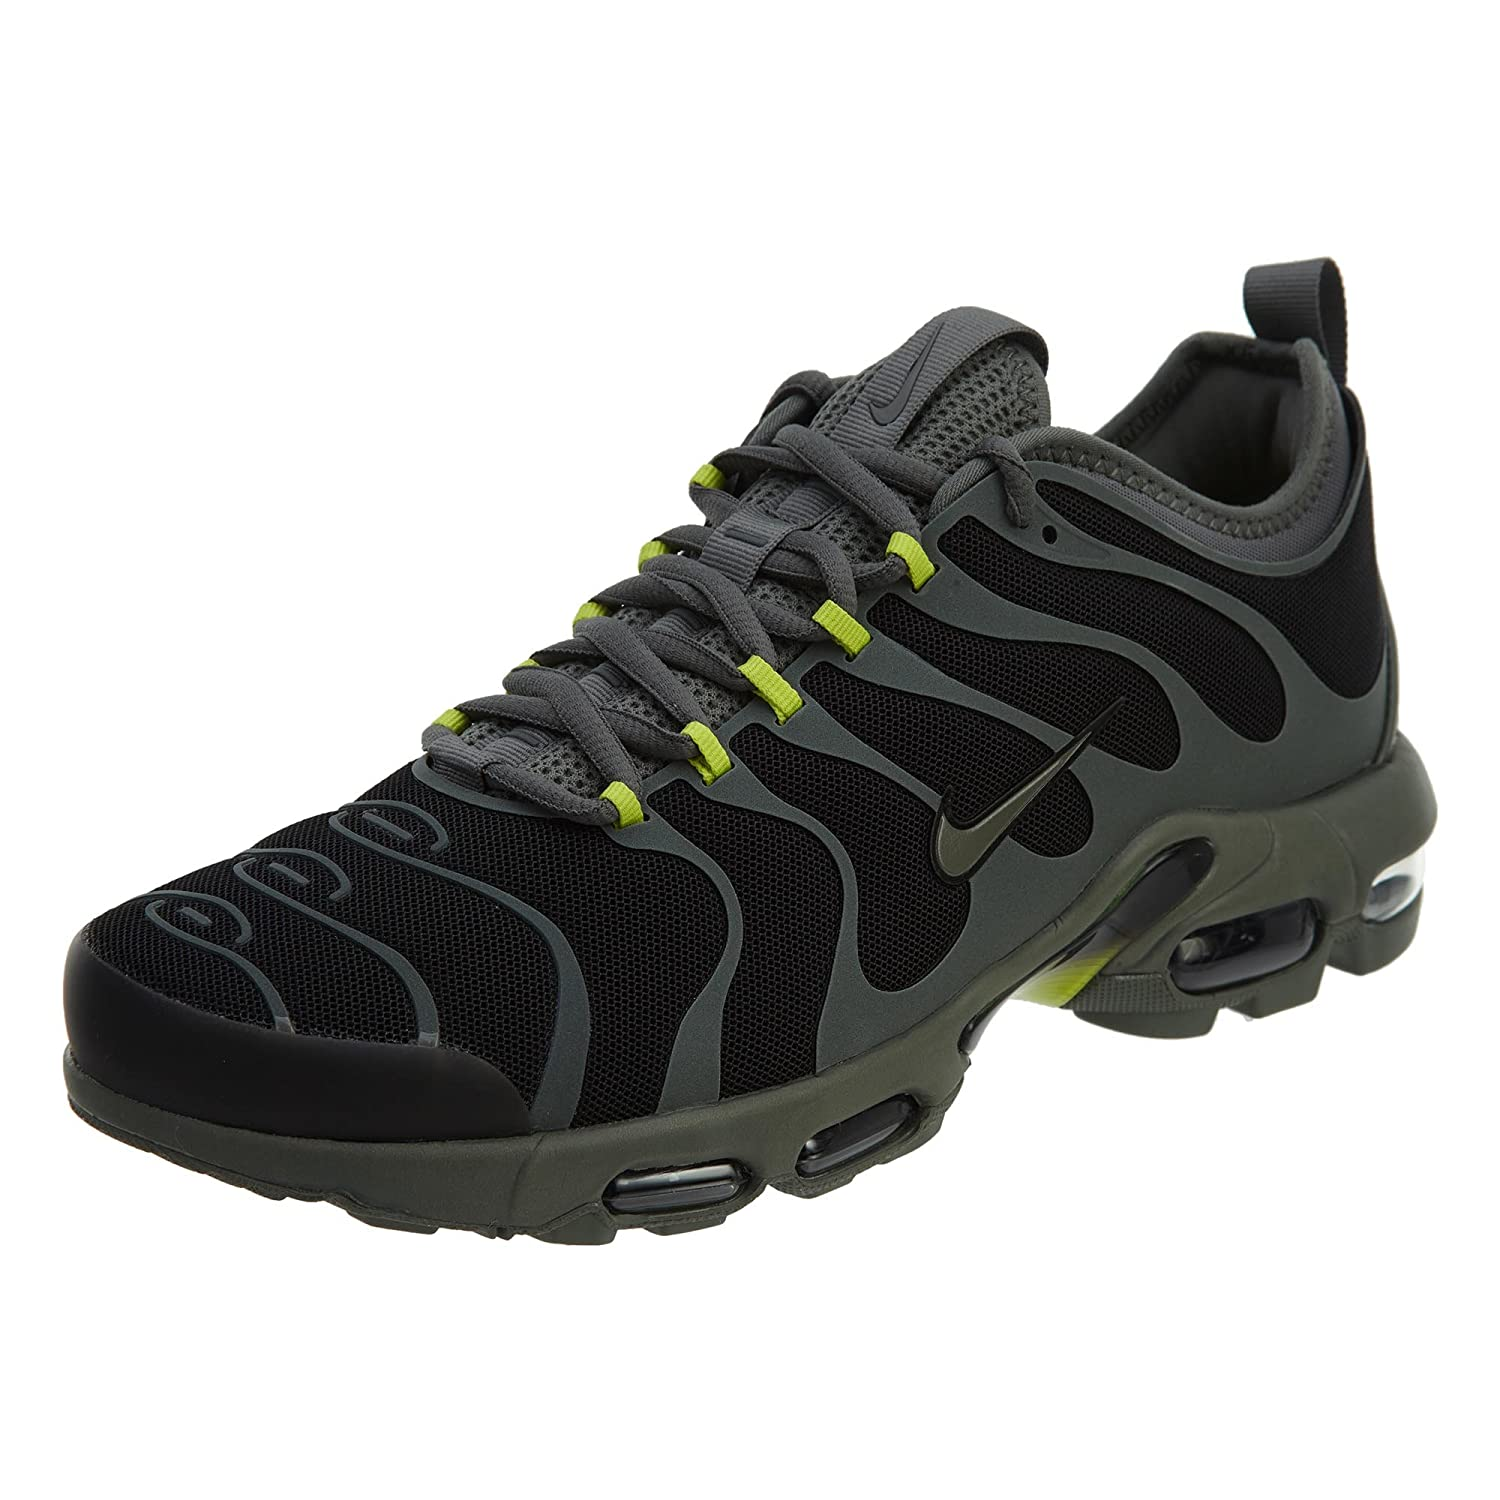 best sneakers d7ba1 d6984 Amazon.com  Nike Air Max Plus Tn Ultra Mens Style 898015-006 Size 7   Running